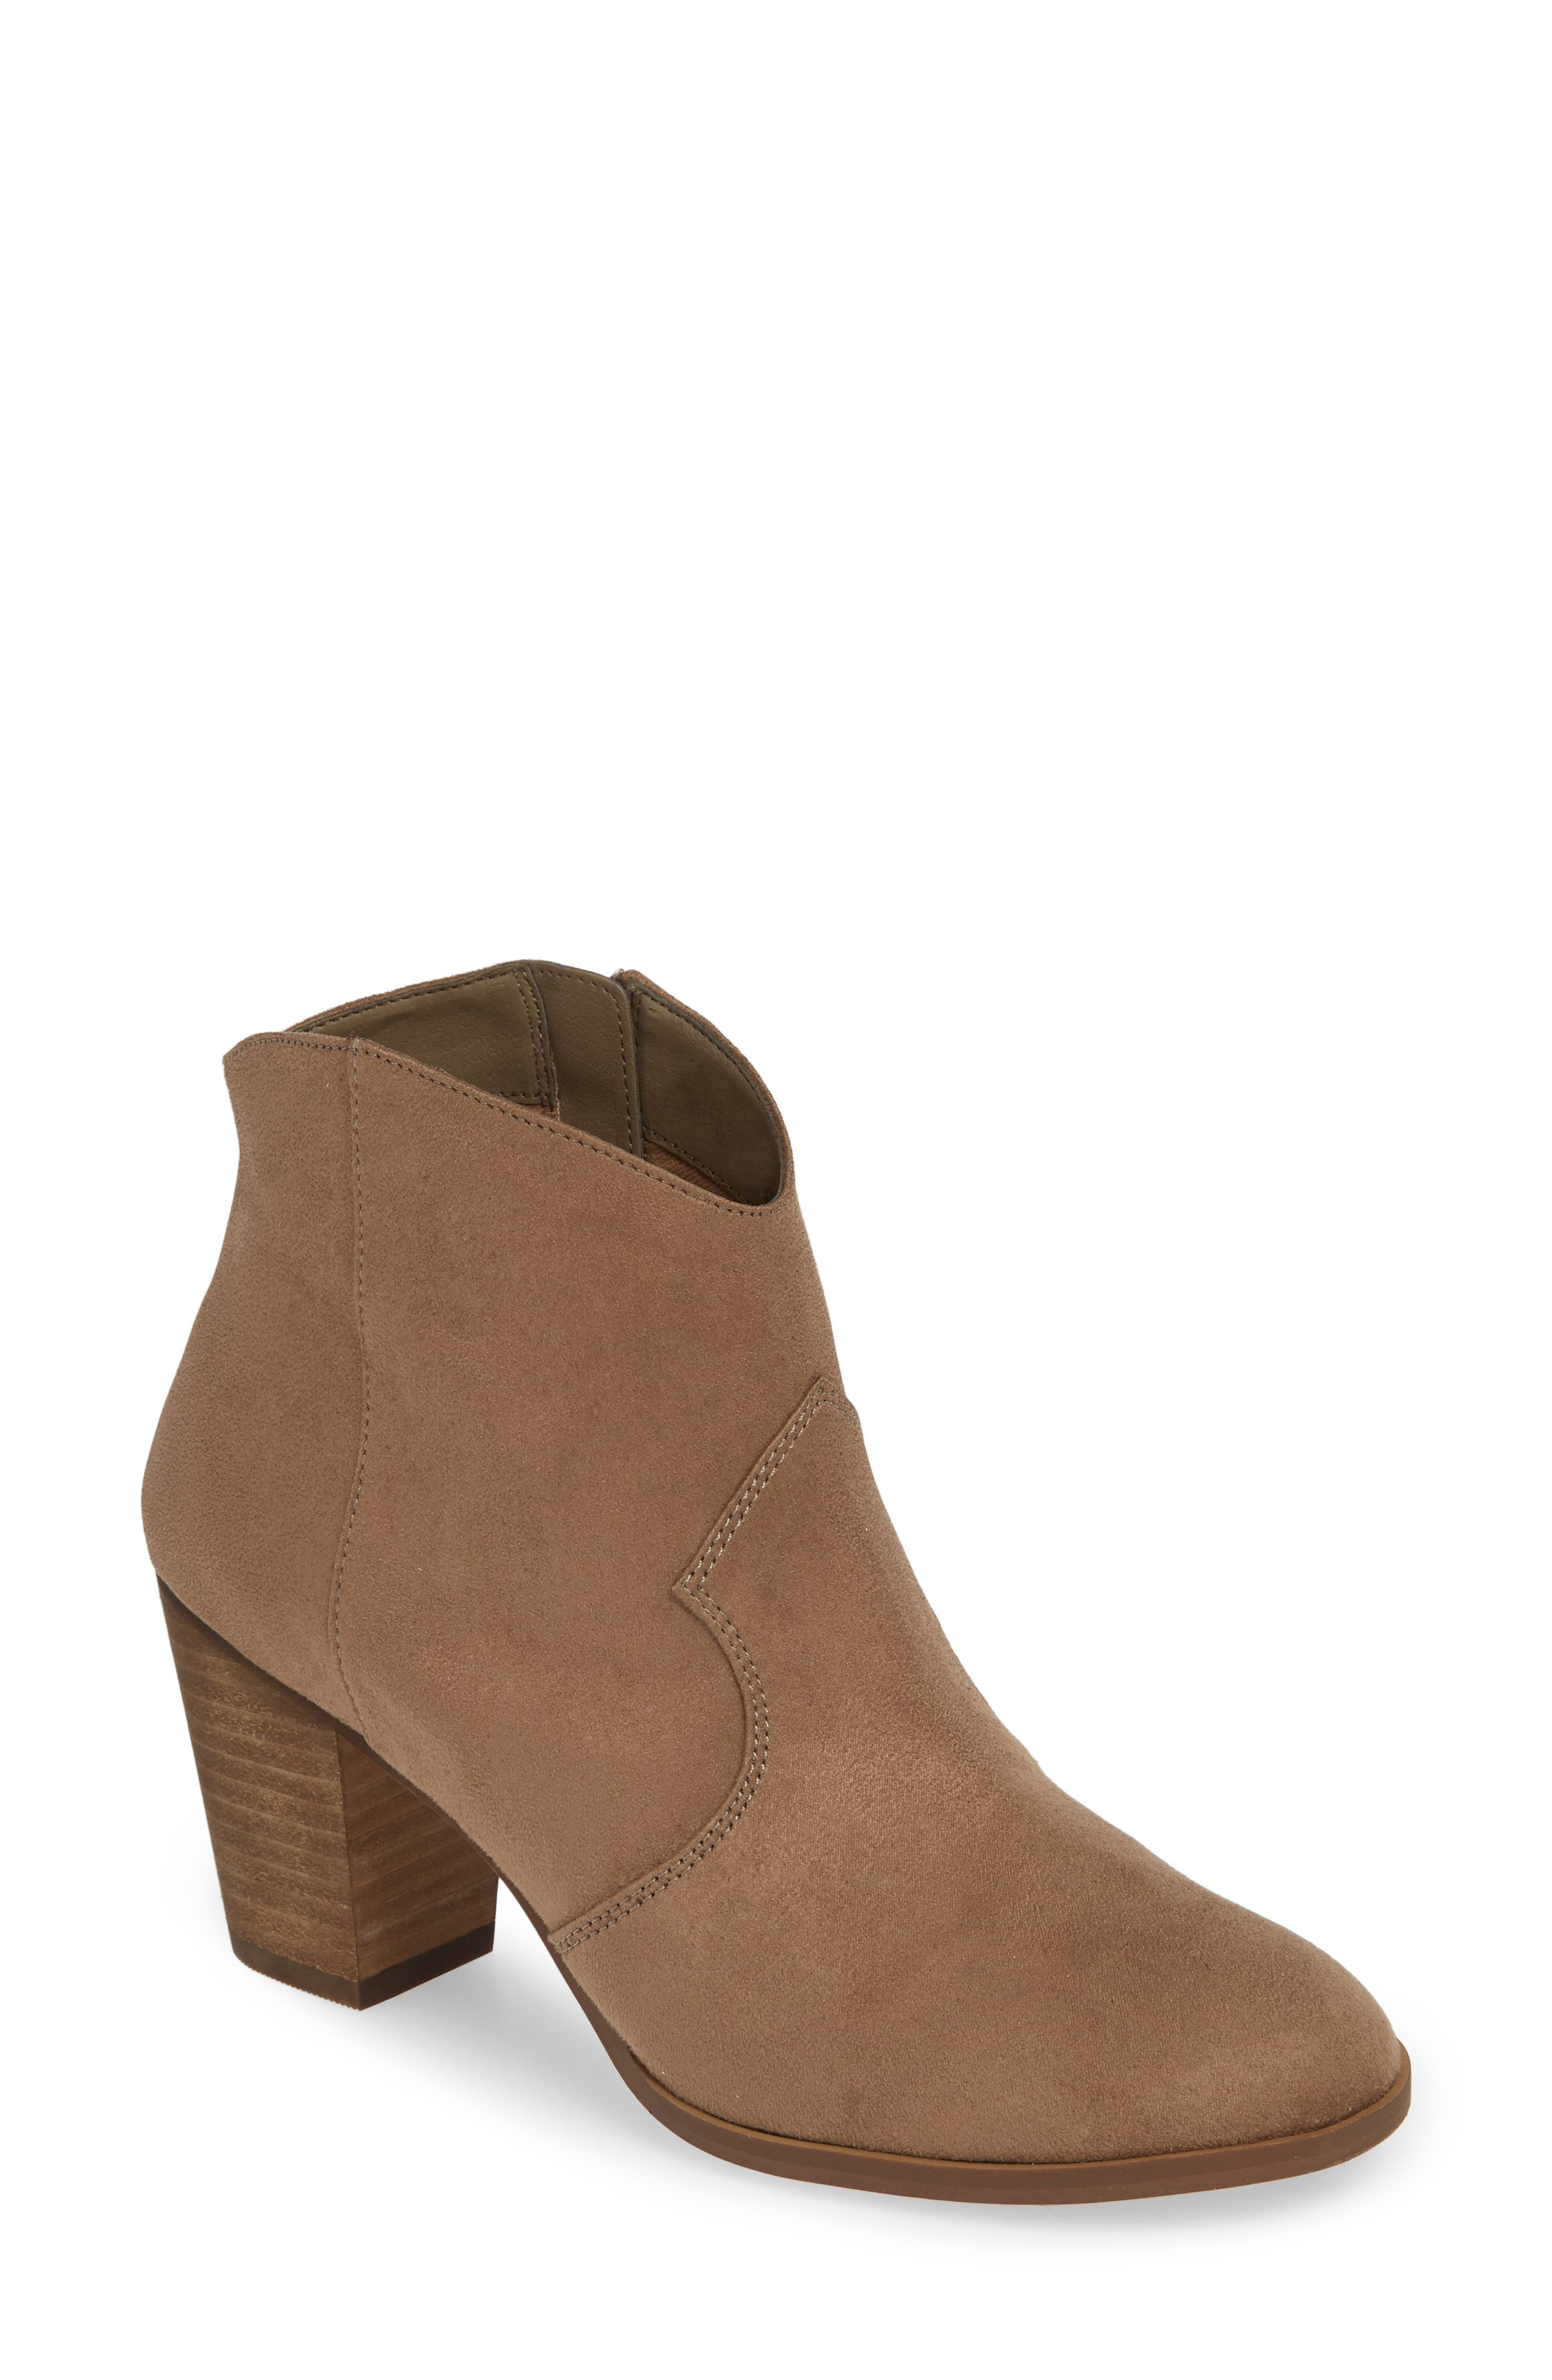 Nolly Bootie, Main, color, TAUPE FAUX SUEDE